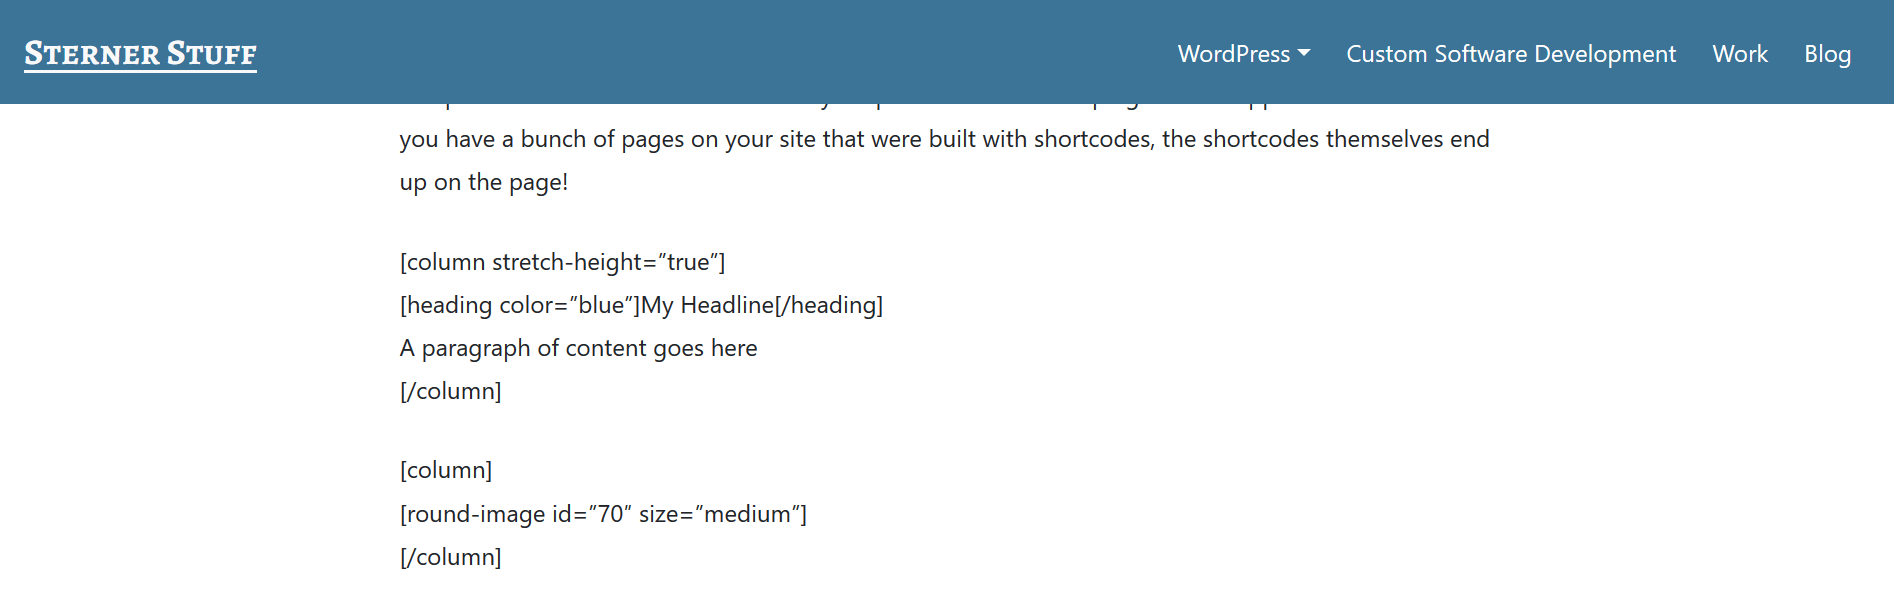 Shortcodes being output into the content of a page